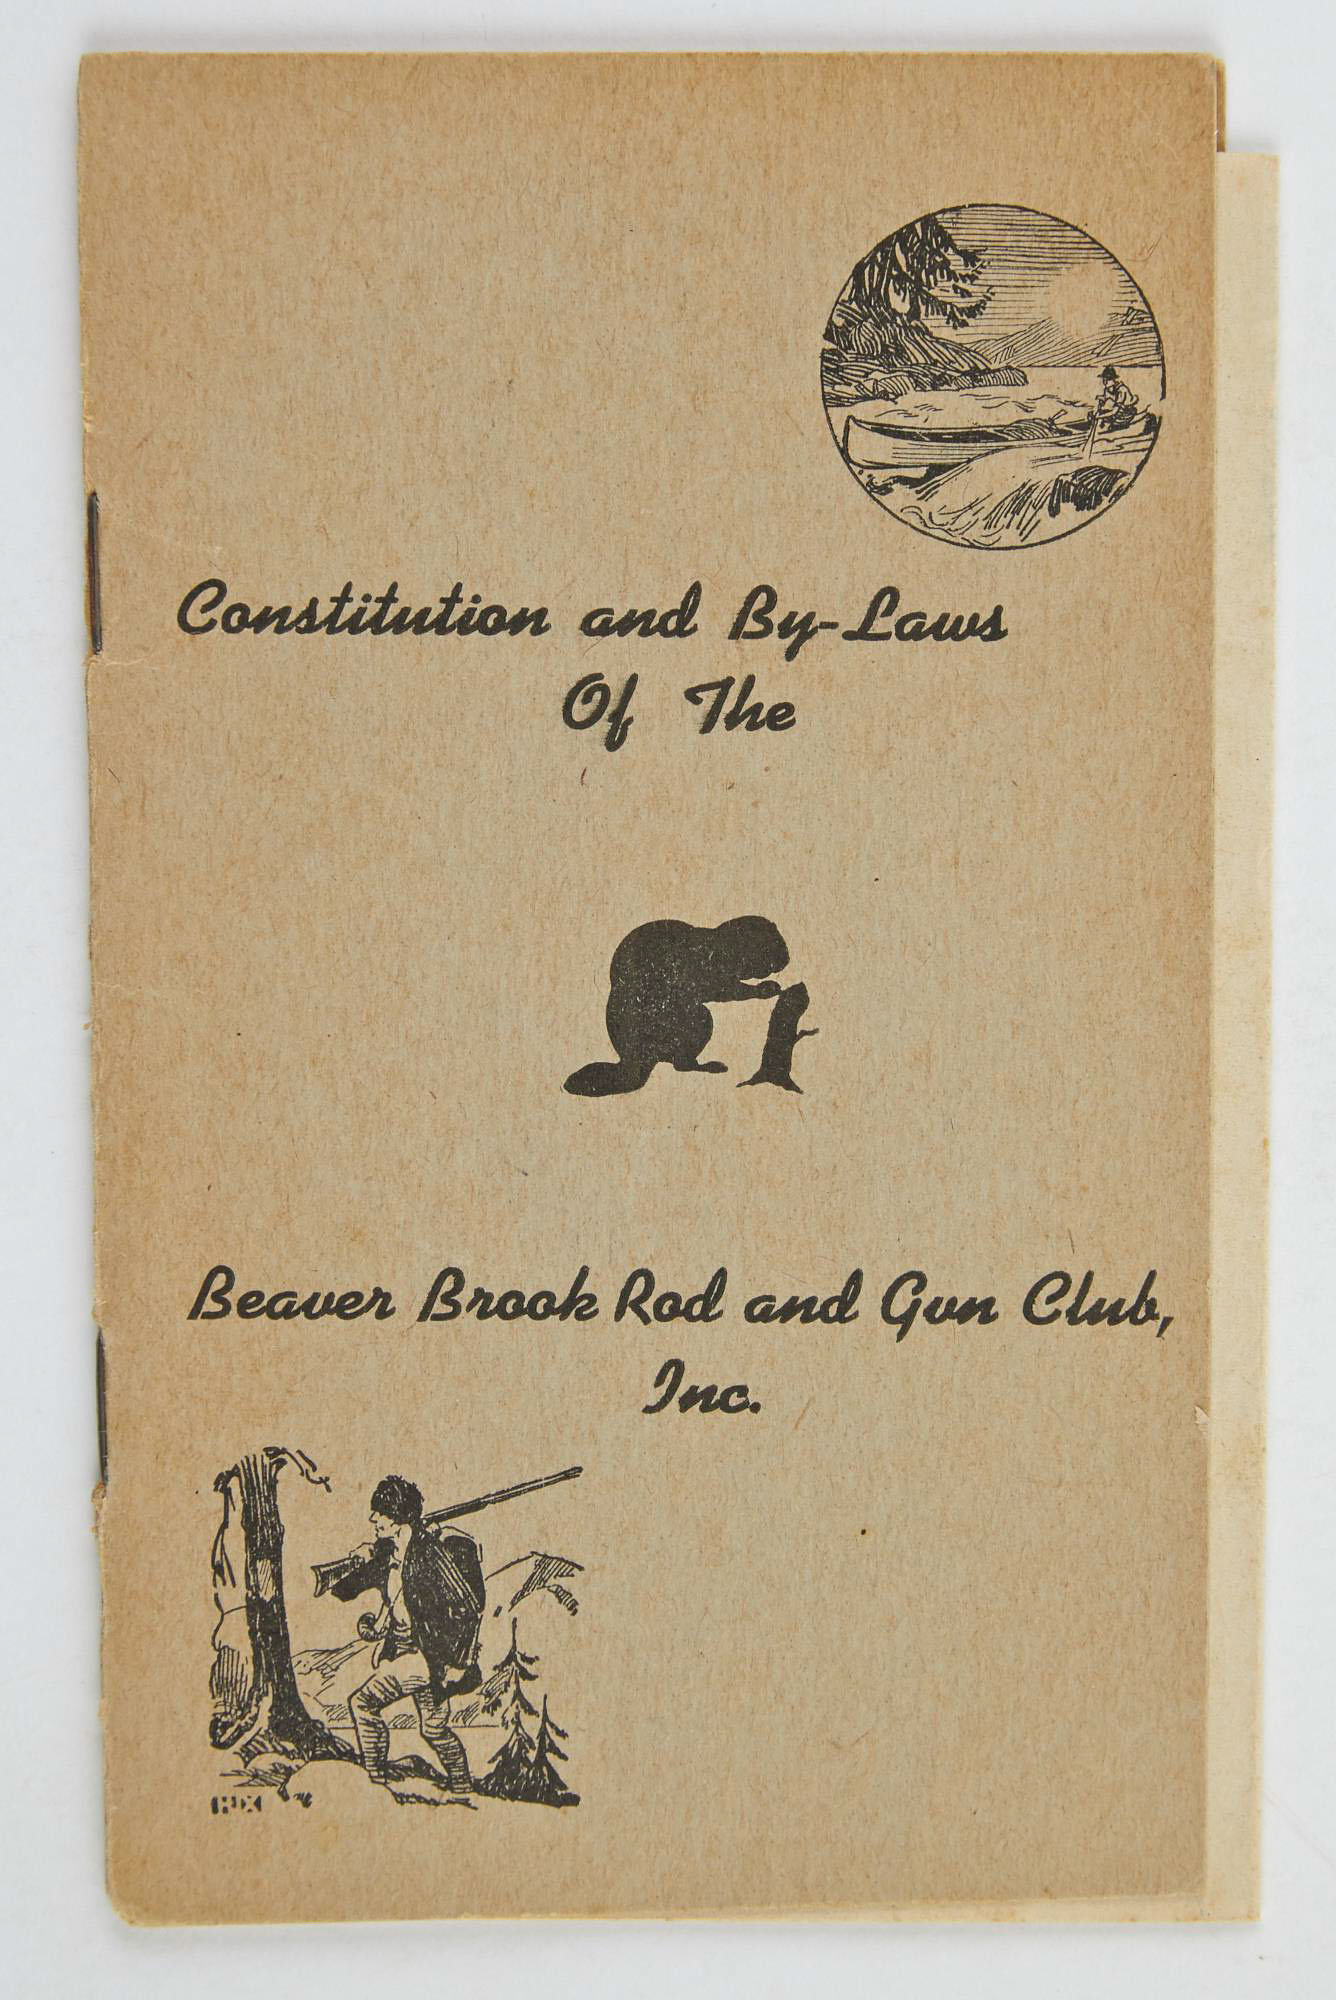 Lot image - [ANGLING CLUB]  Constitution and By-Laws of the Beaver Brook Rod and Gun Club, Inc.